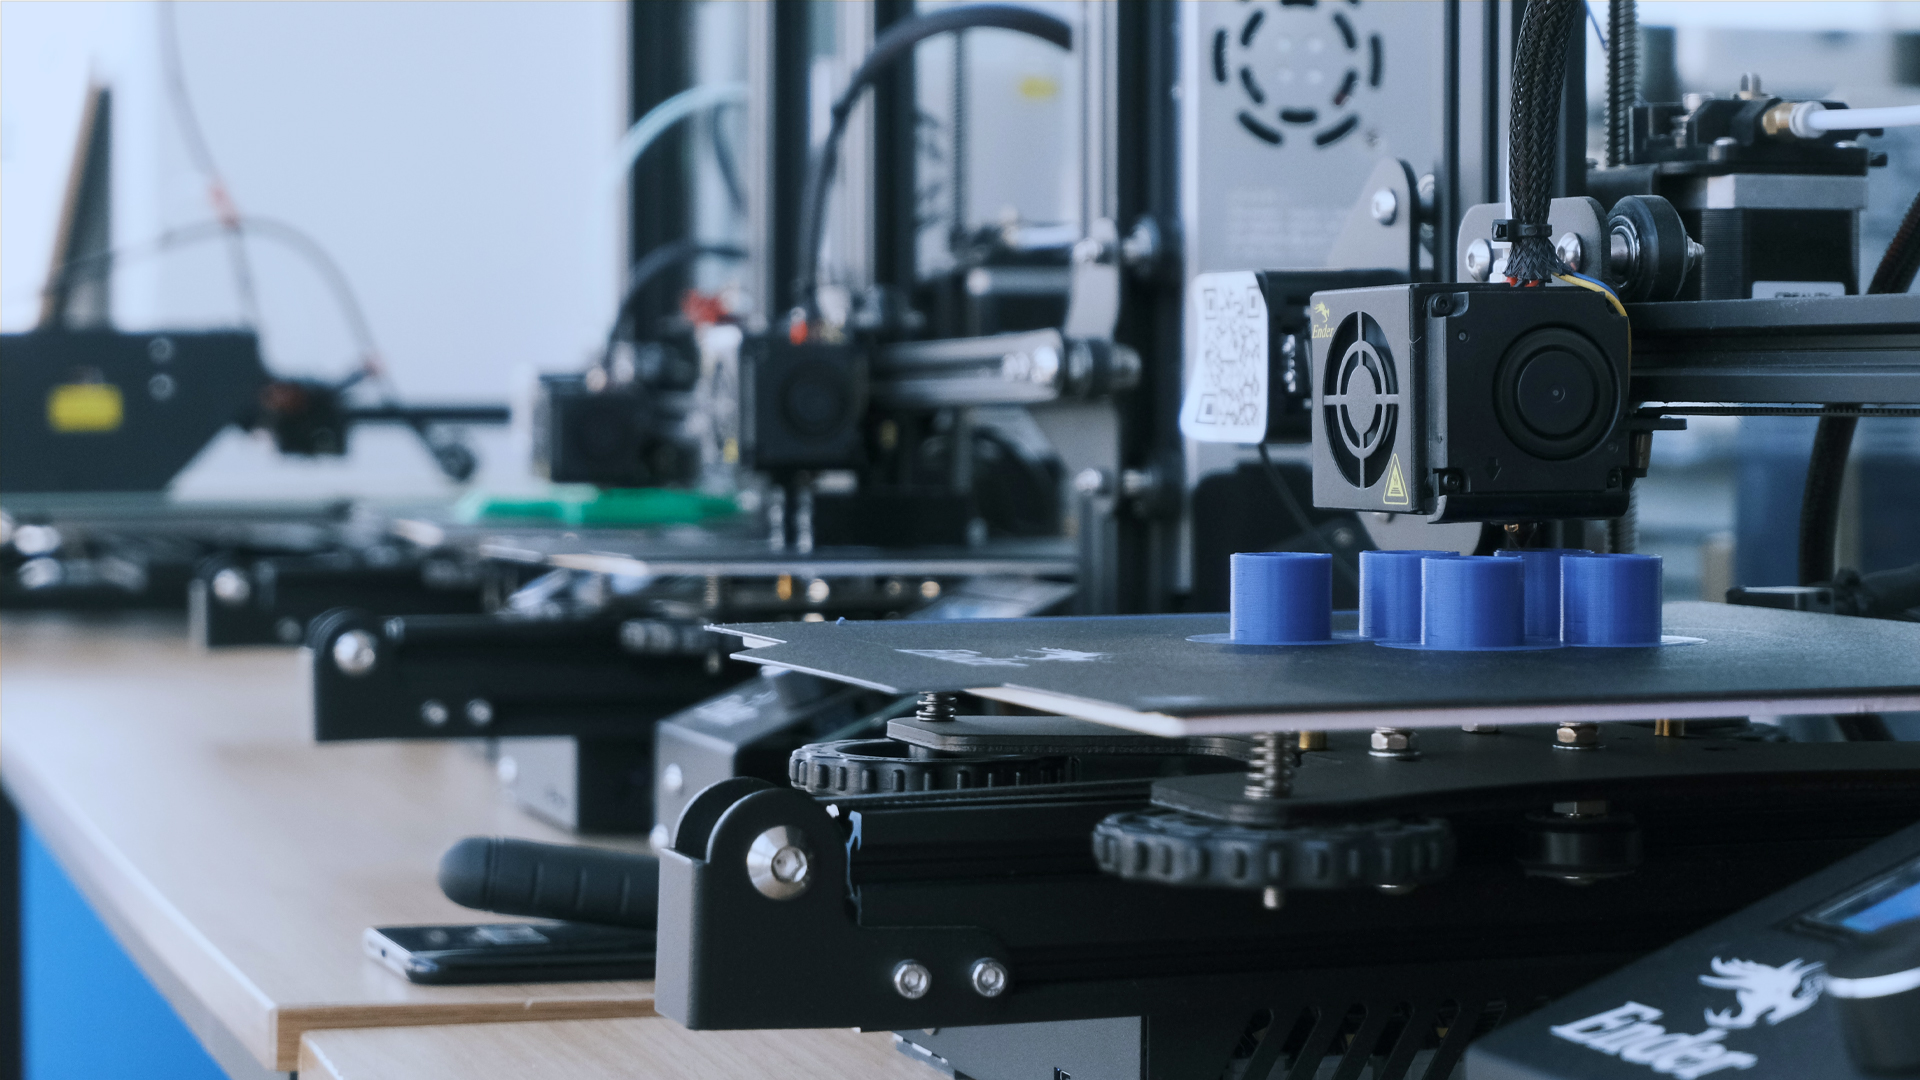 Automation Alley's Project DIAMOnD announces milestone distribution of 300 3D printers; CARES ACT-backed effort moves forward with plan to create nation's largest 3D printer network